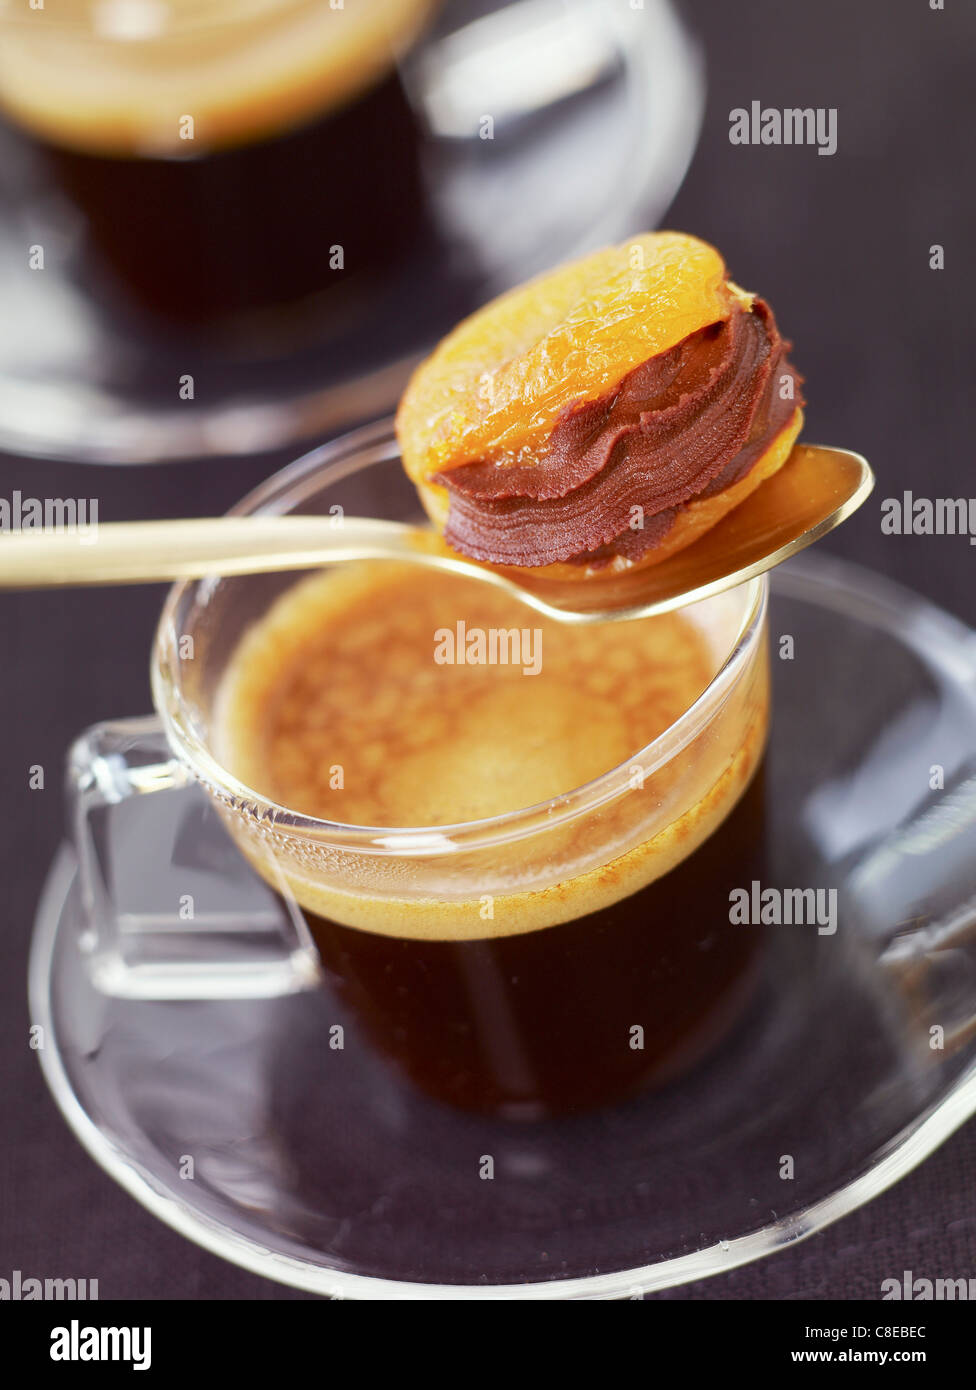 Dried apricot with chocolate filling and a cup of coffee - Stock Image